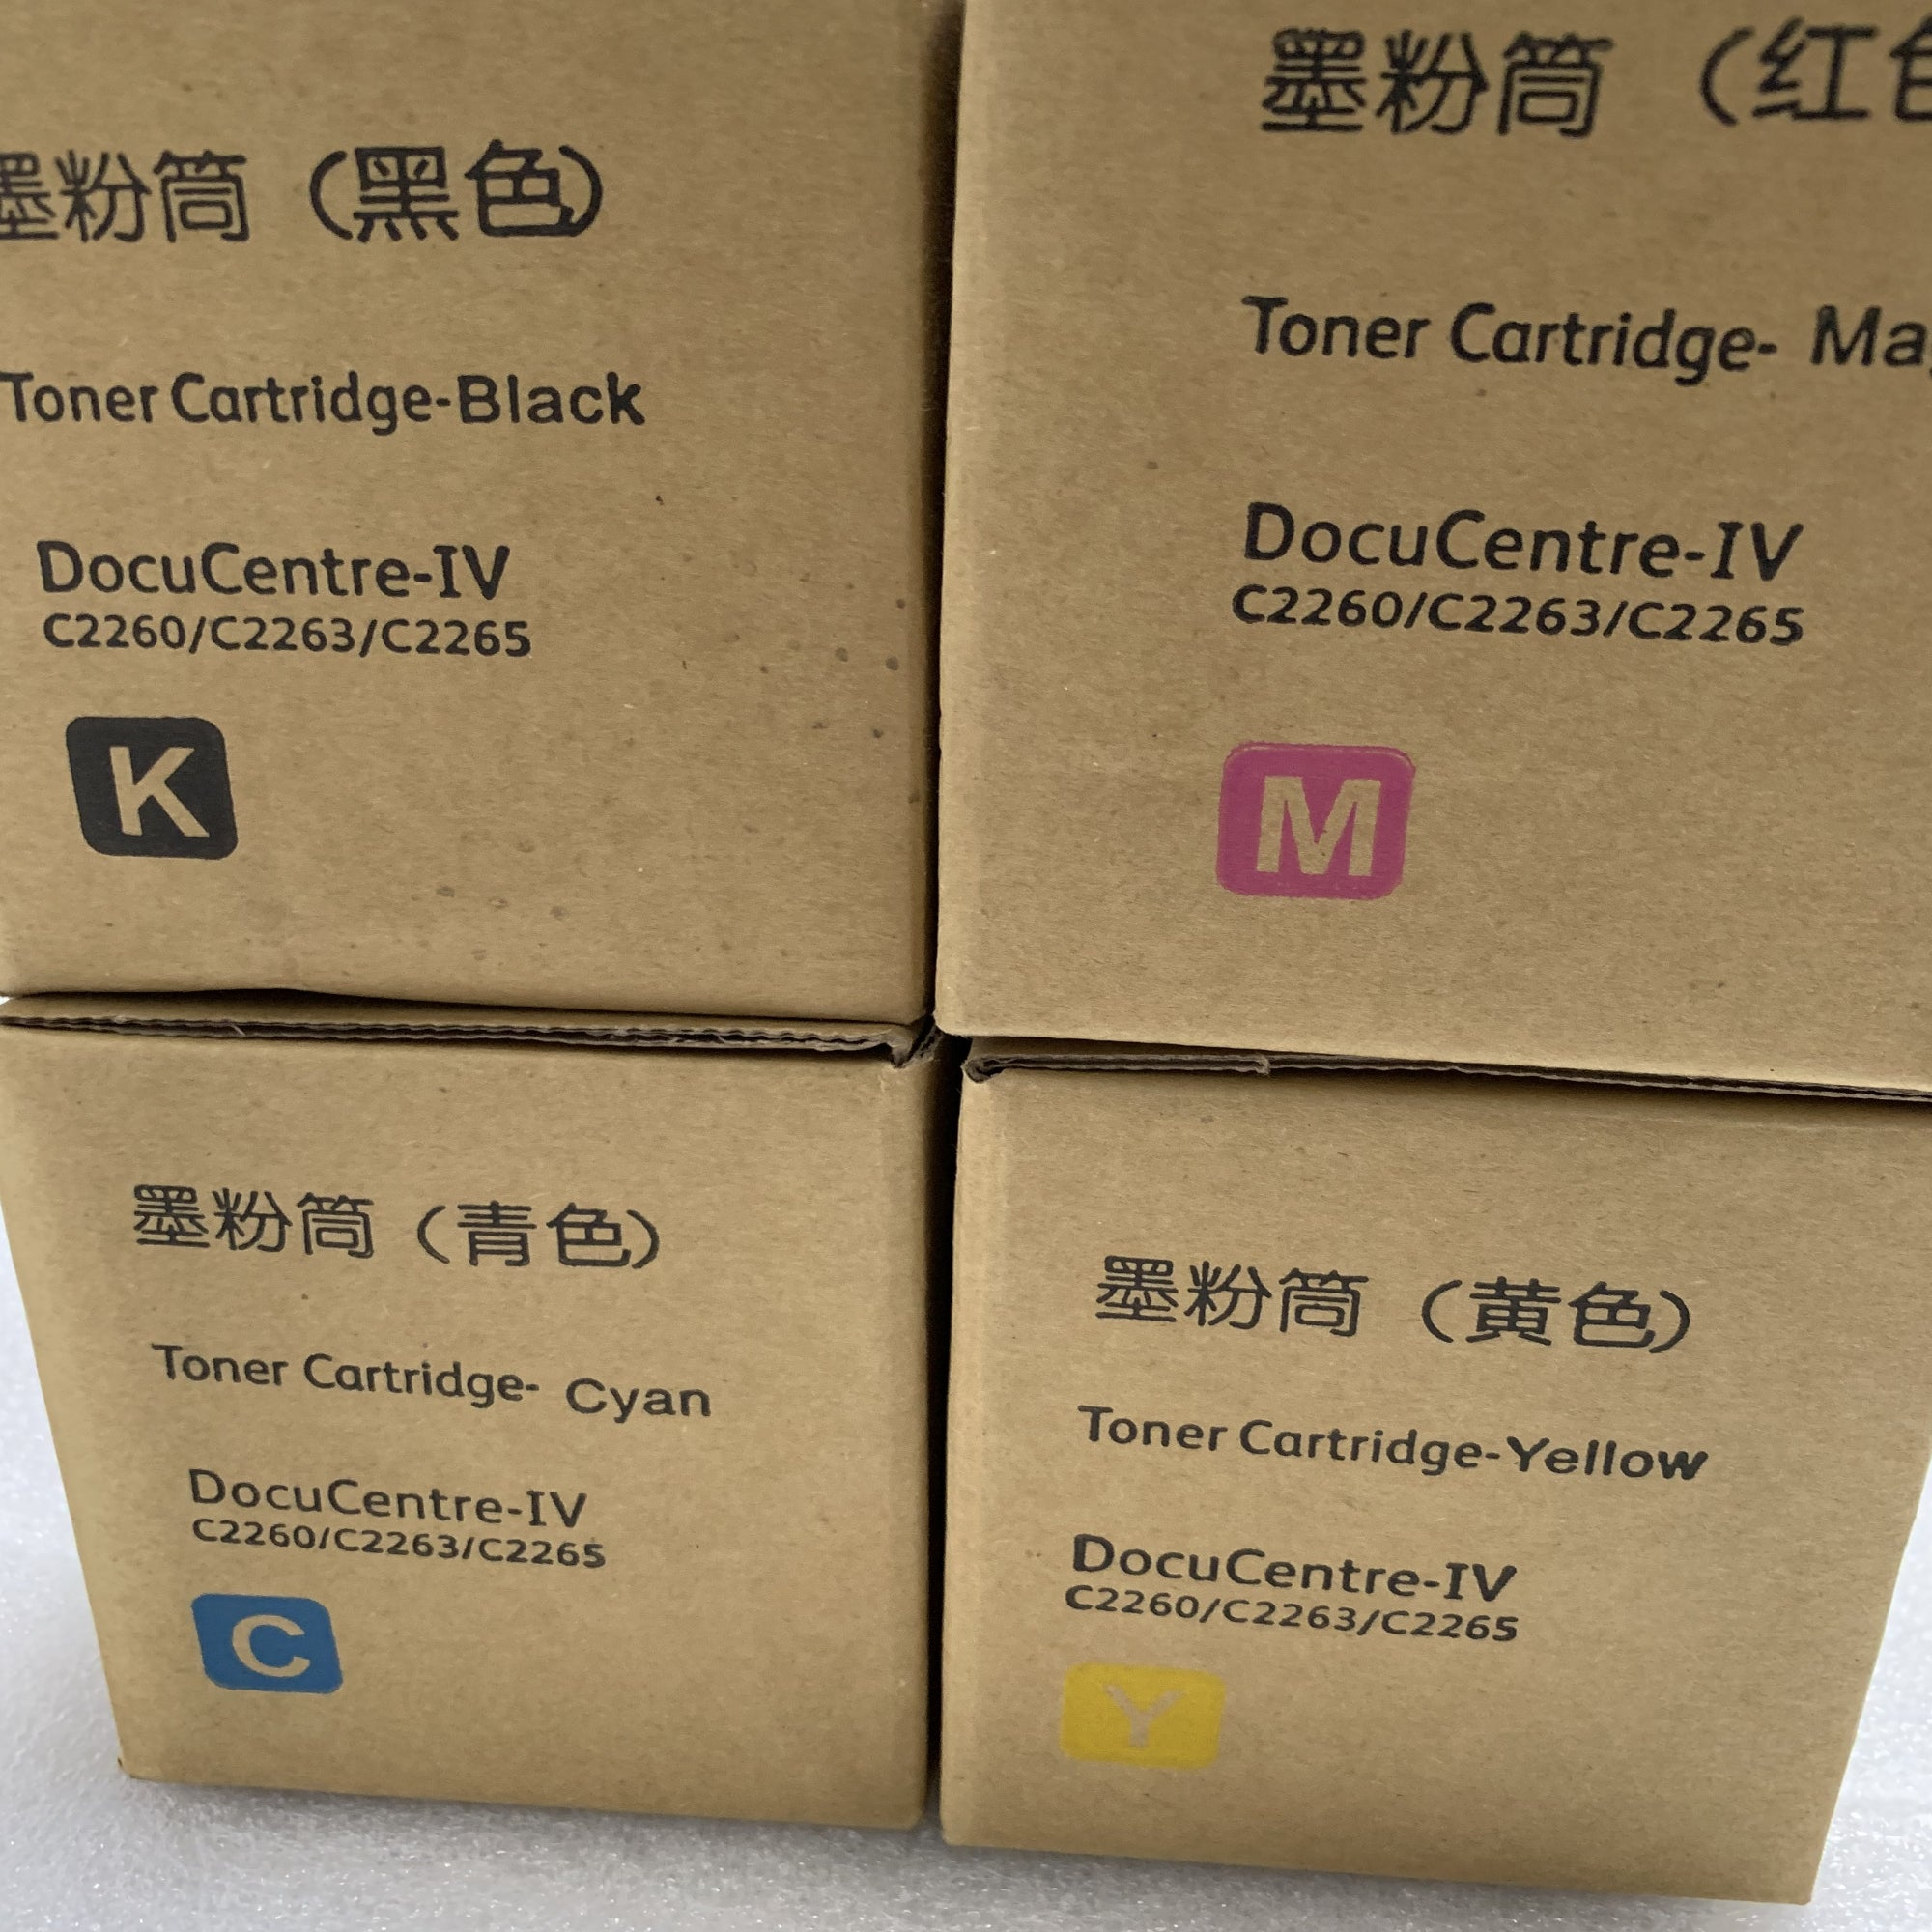 4 PK Toner  For Xerox WorkCentre 7120 7125 7220 7225 006R01457 - 006R01460 - SOP-TECHNOLOGIES, INC.